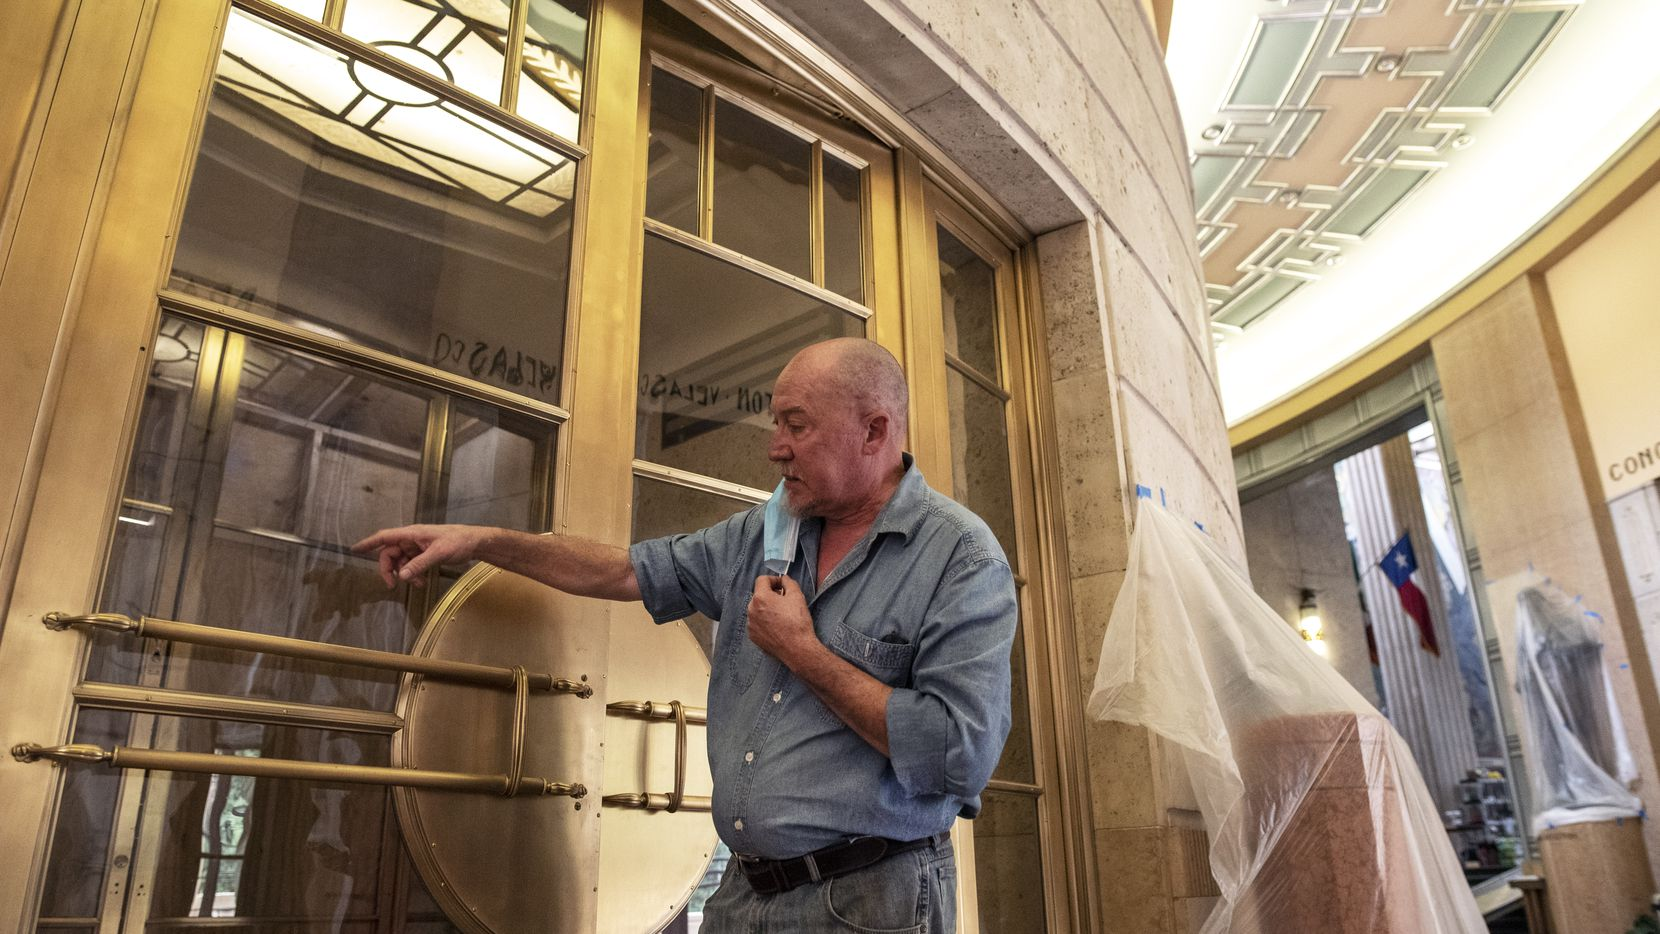 Art conservator Michael Van Enter explains the process of hand polishing a brush finish on one of the sets of massive doors at the Hall of State. His team also was responsible for restoring the intricate silver leaf in the ceiling.